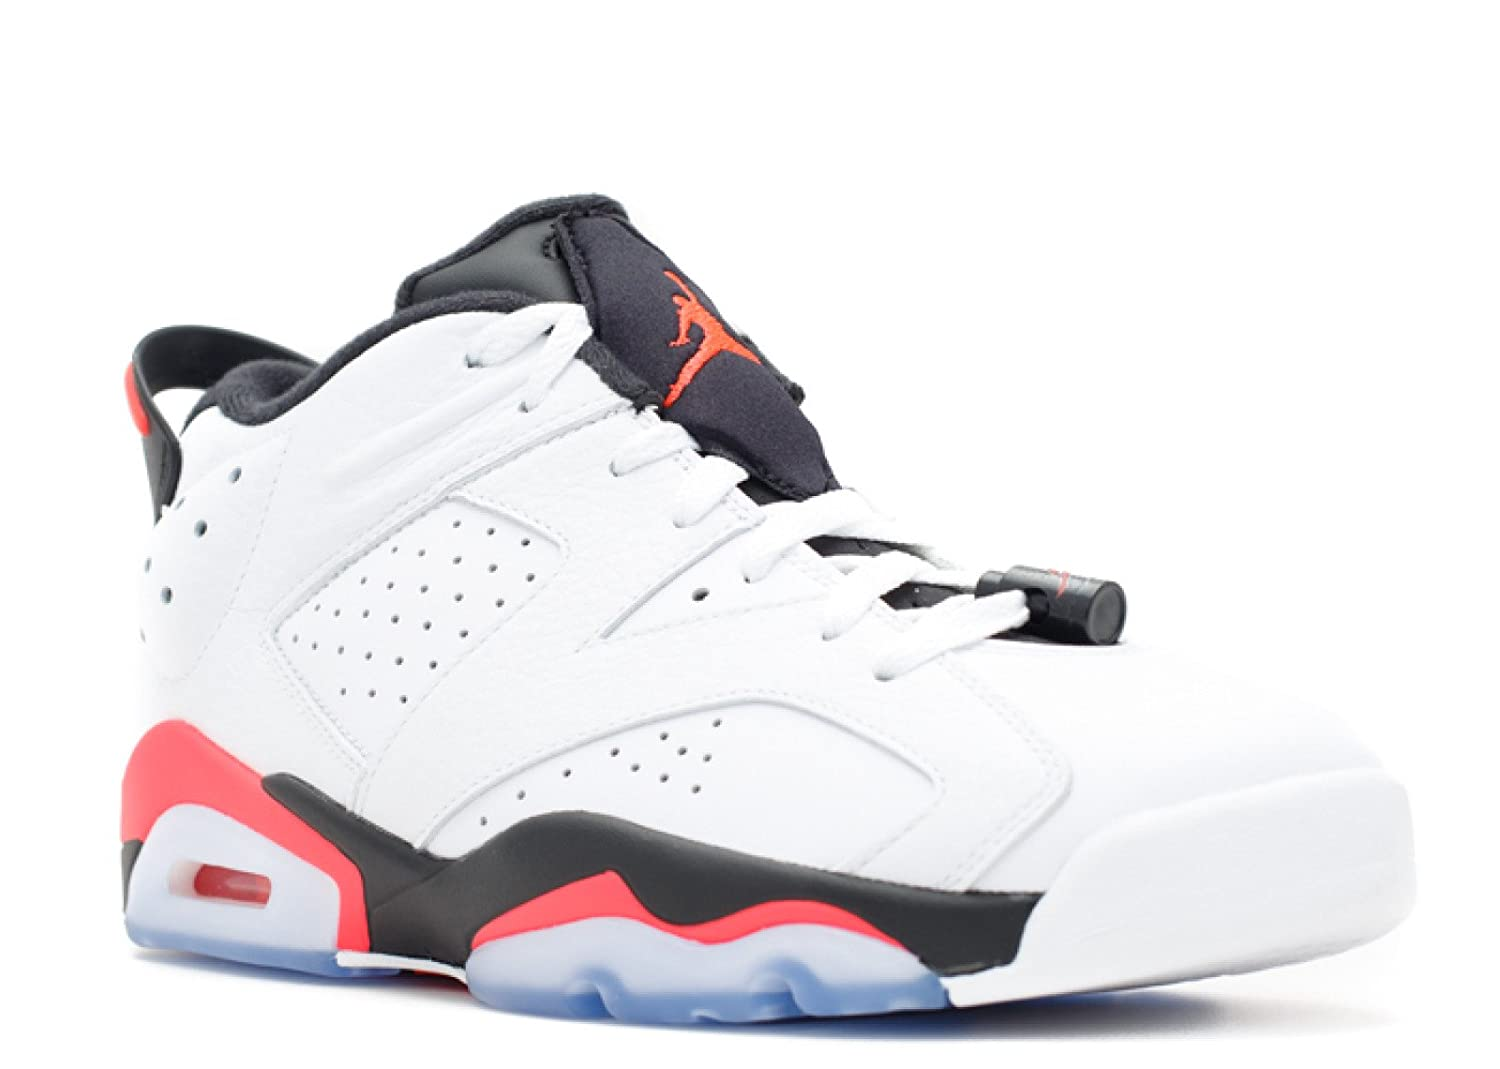 sports shoes 94812 1746d NIKE Air Jordan 6 Retro Low 304401-123 White/Infrared 23/Black Men's Shoes  (Size 14)